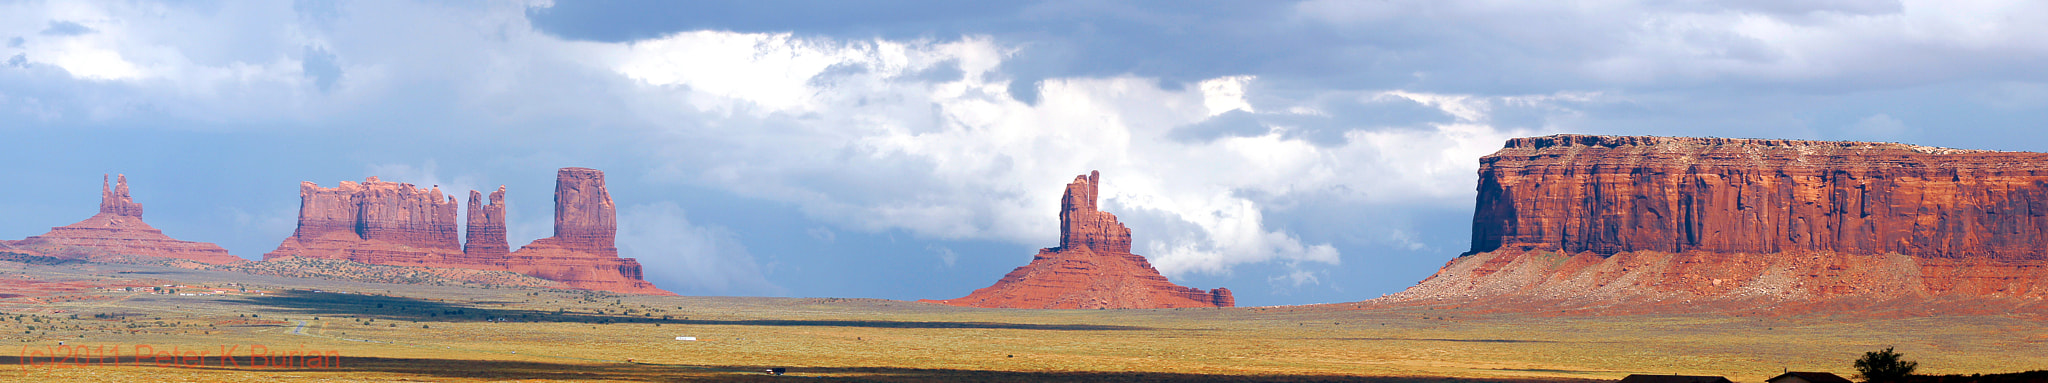 Photograph Monument Valley, Panorama by Peter K Burian on 500px